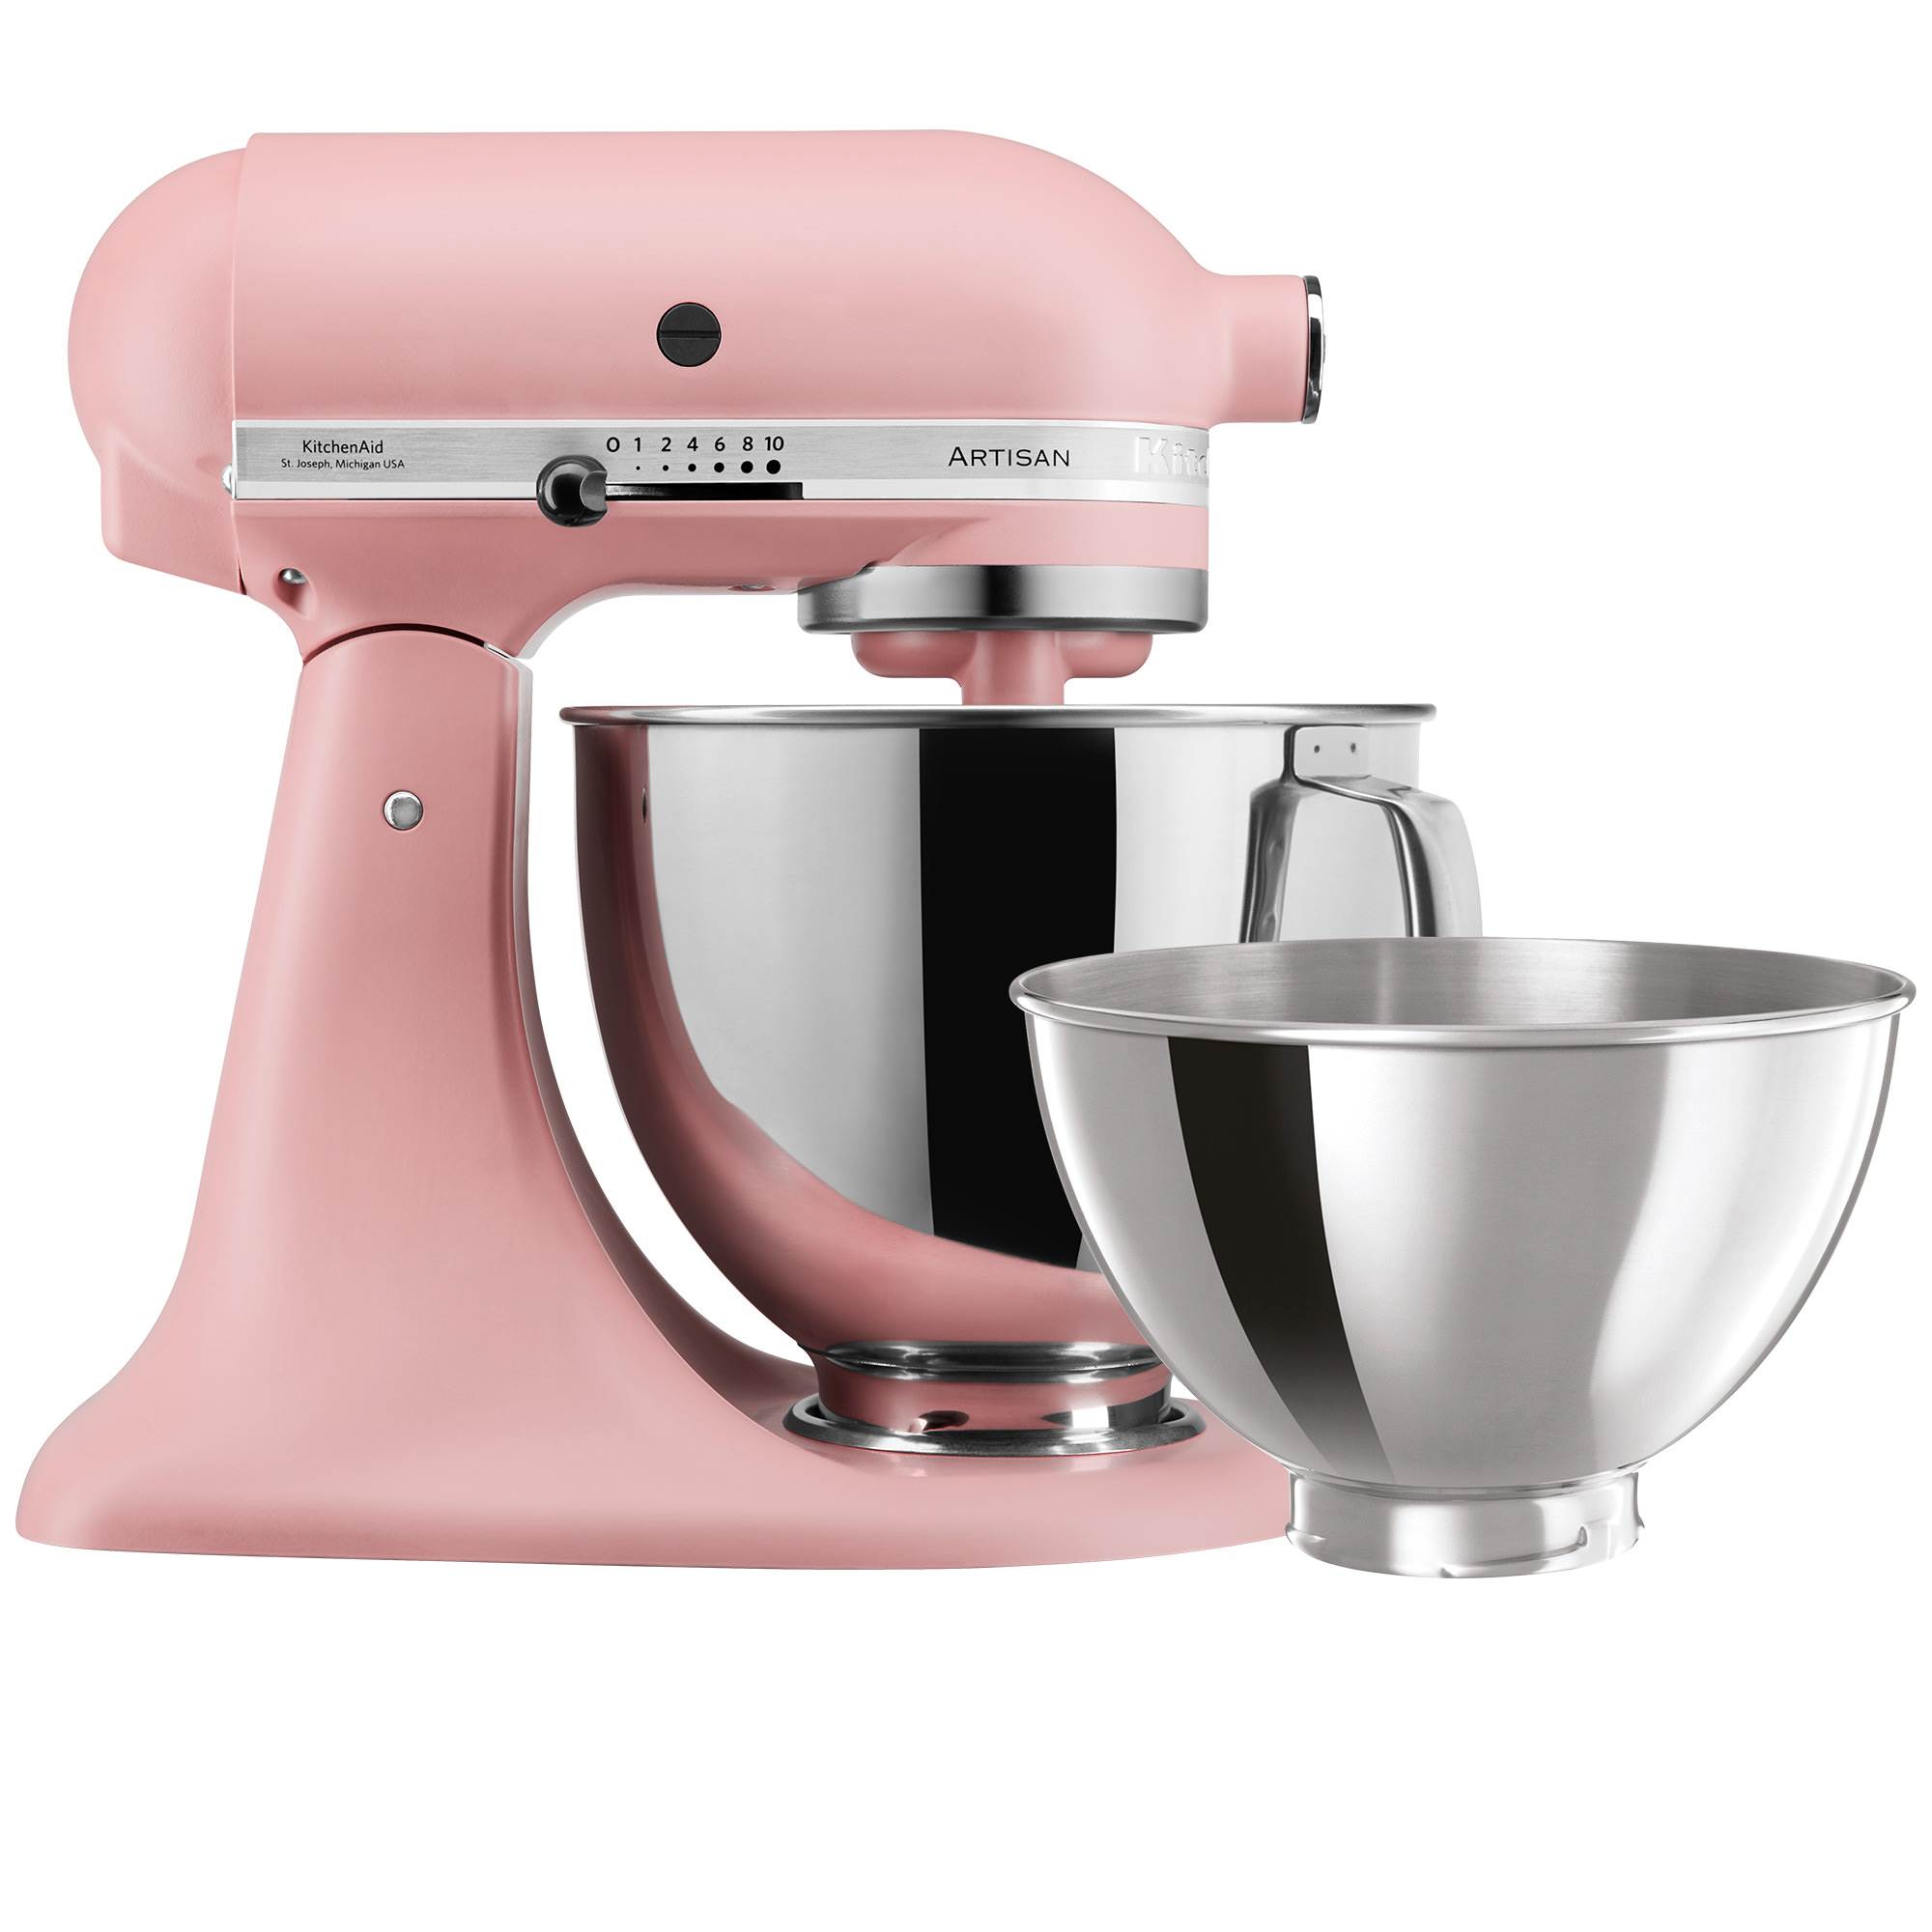 KitchenAid Matte Luxe Artisan KSM160 Stand Mixer Dried Rose